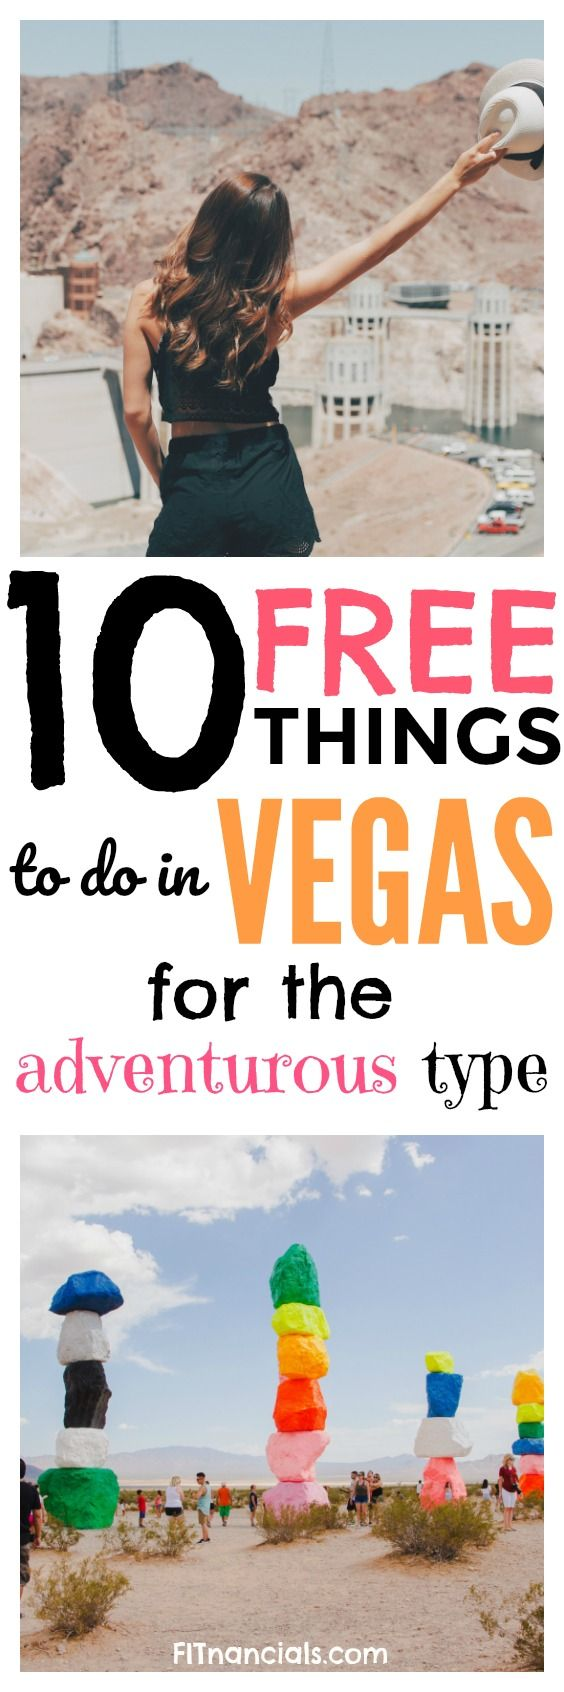 10 Awesome Free Things To Do In Las Vegas, Nevada via @fitnancials